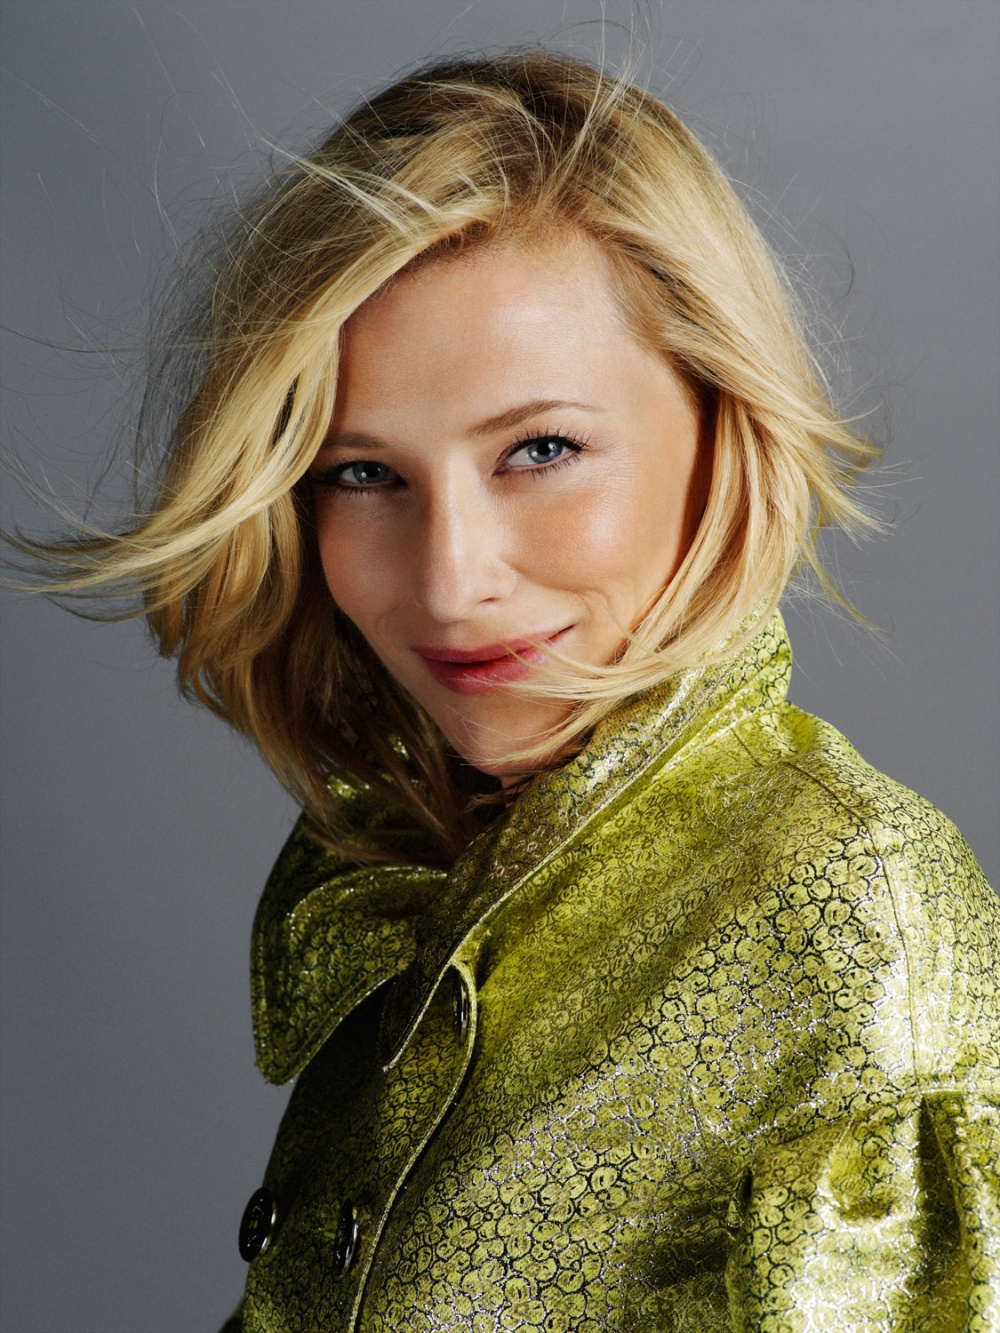 Cate Blanchett #702543 Wallpapers High Quality | Download Free Cate Blanchett